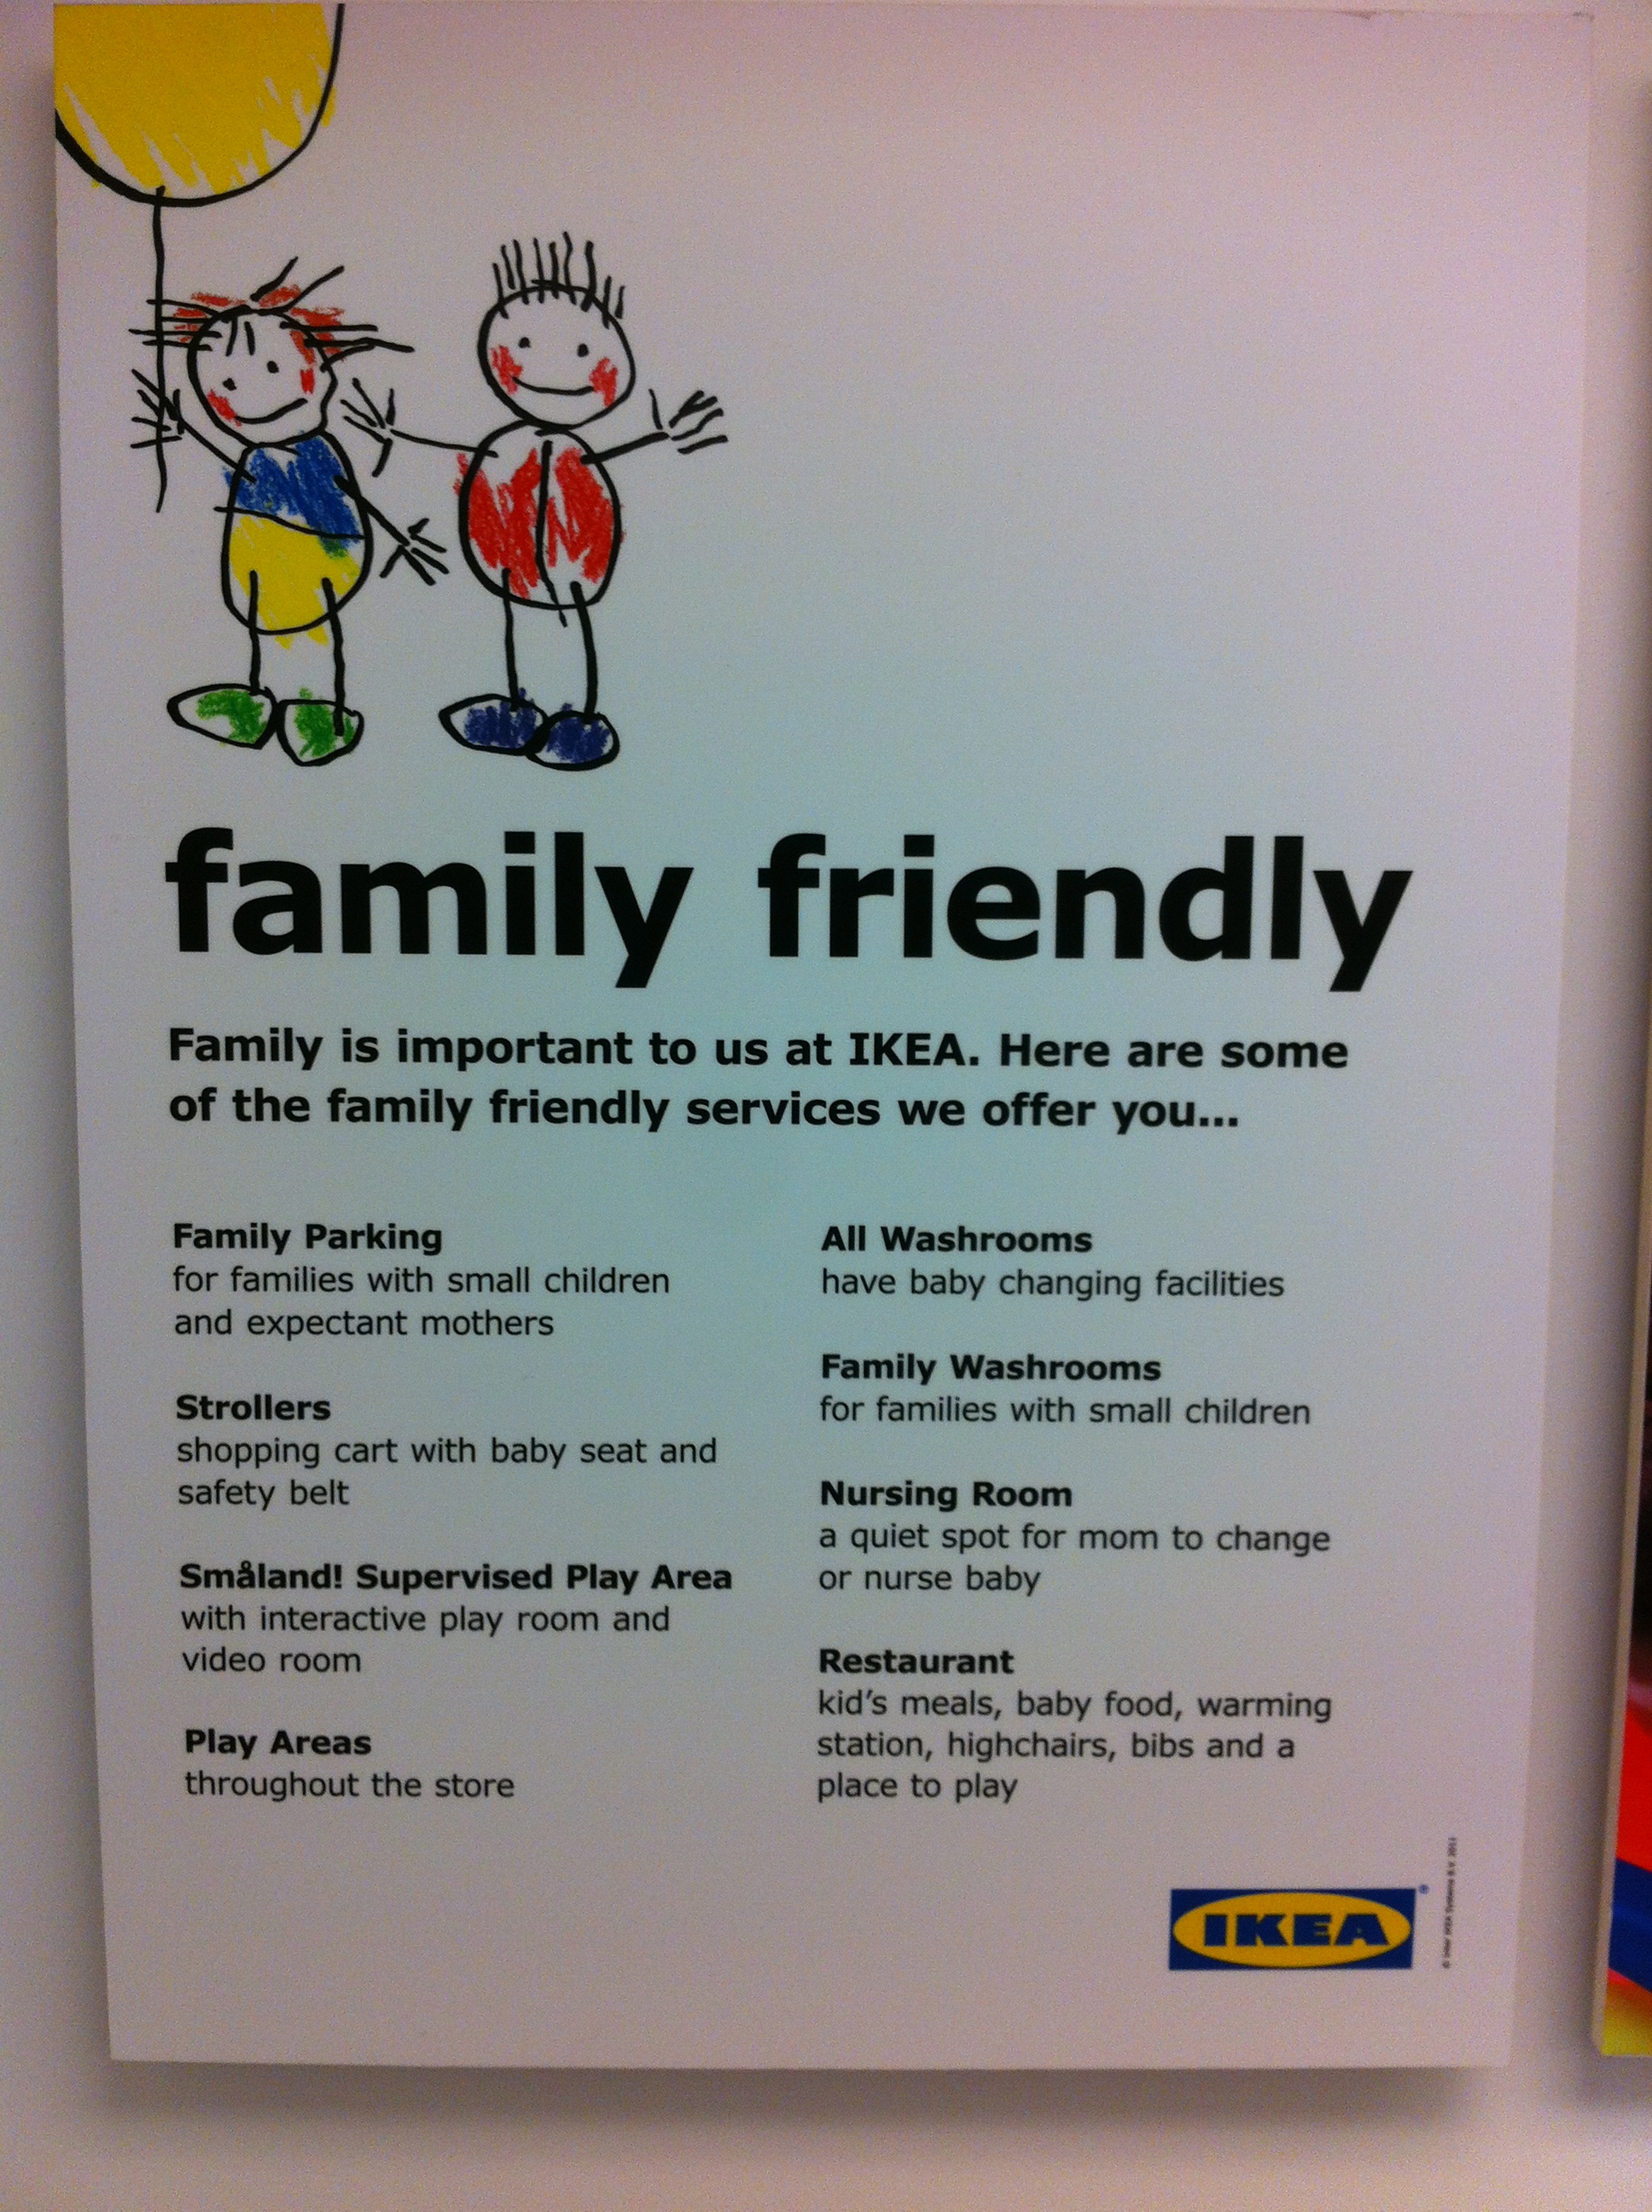 IKEA Really is Family Friendly